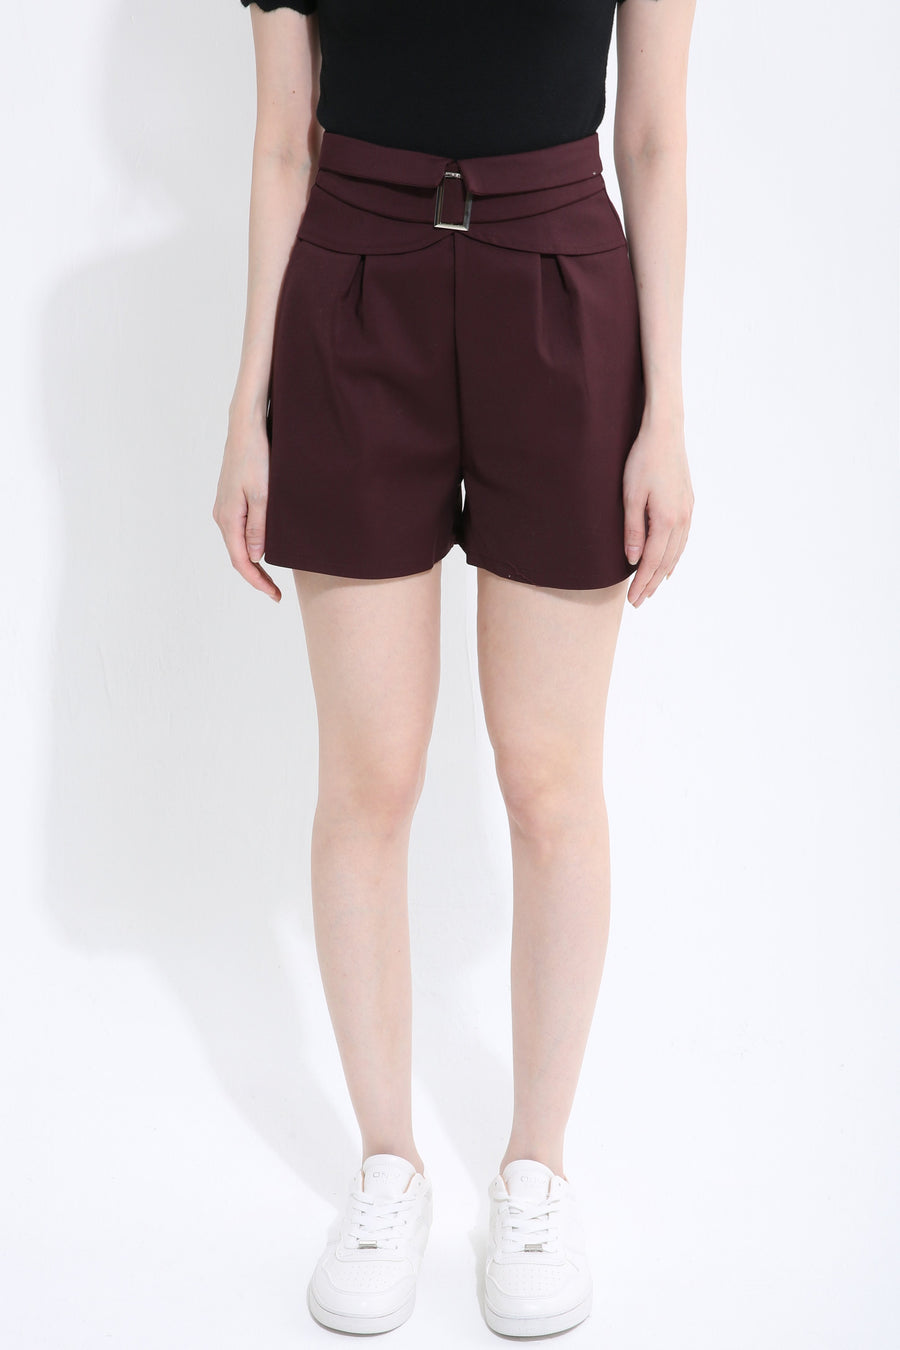 Skirt Pant - Ample Couture